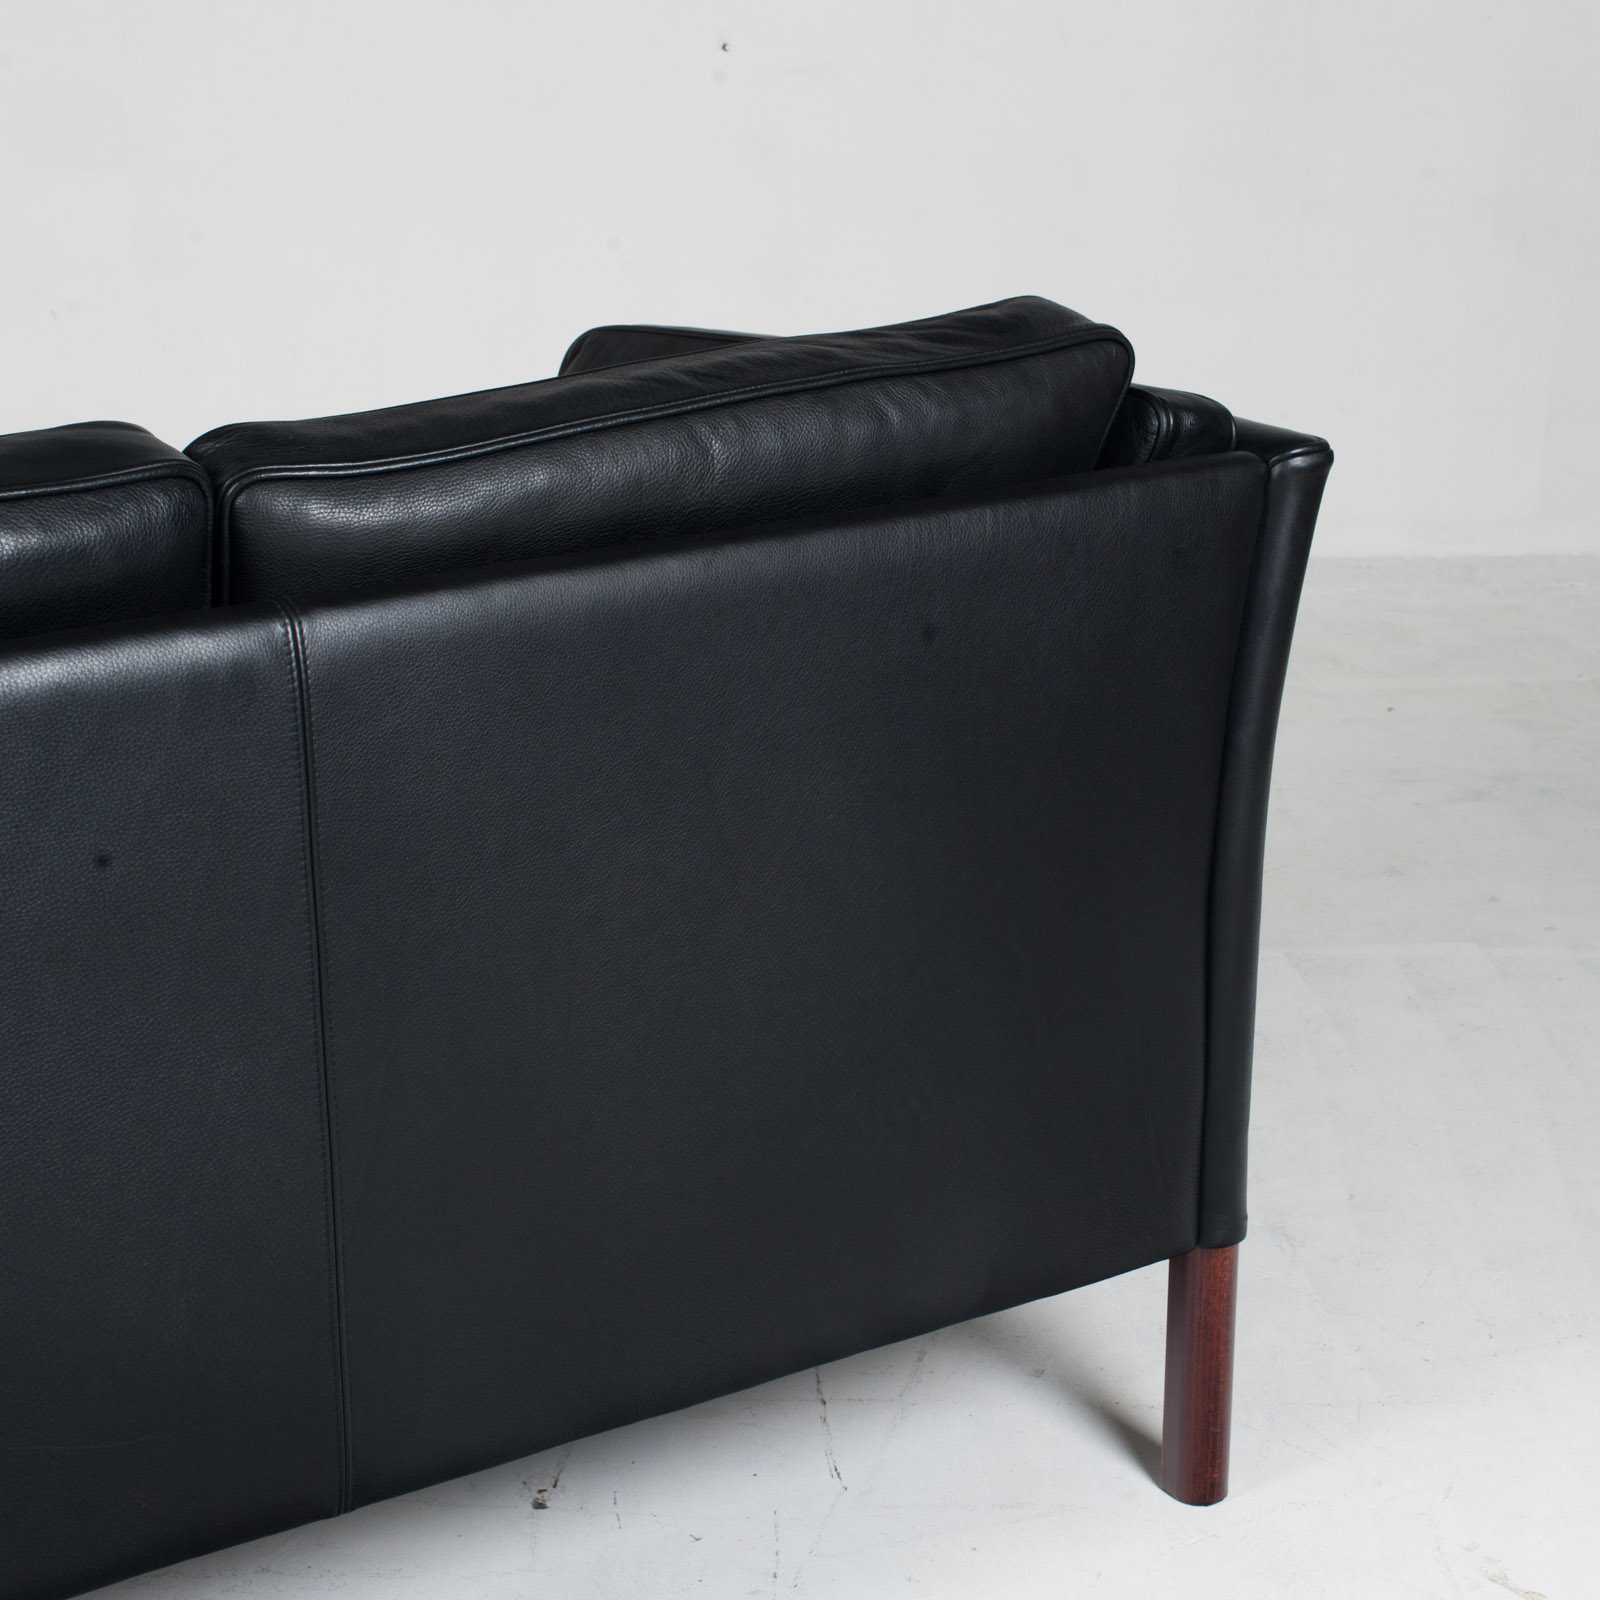 3 Seat Sofa In Black Aniline Leather 1960s Denmark 14